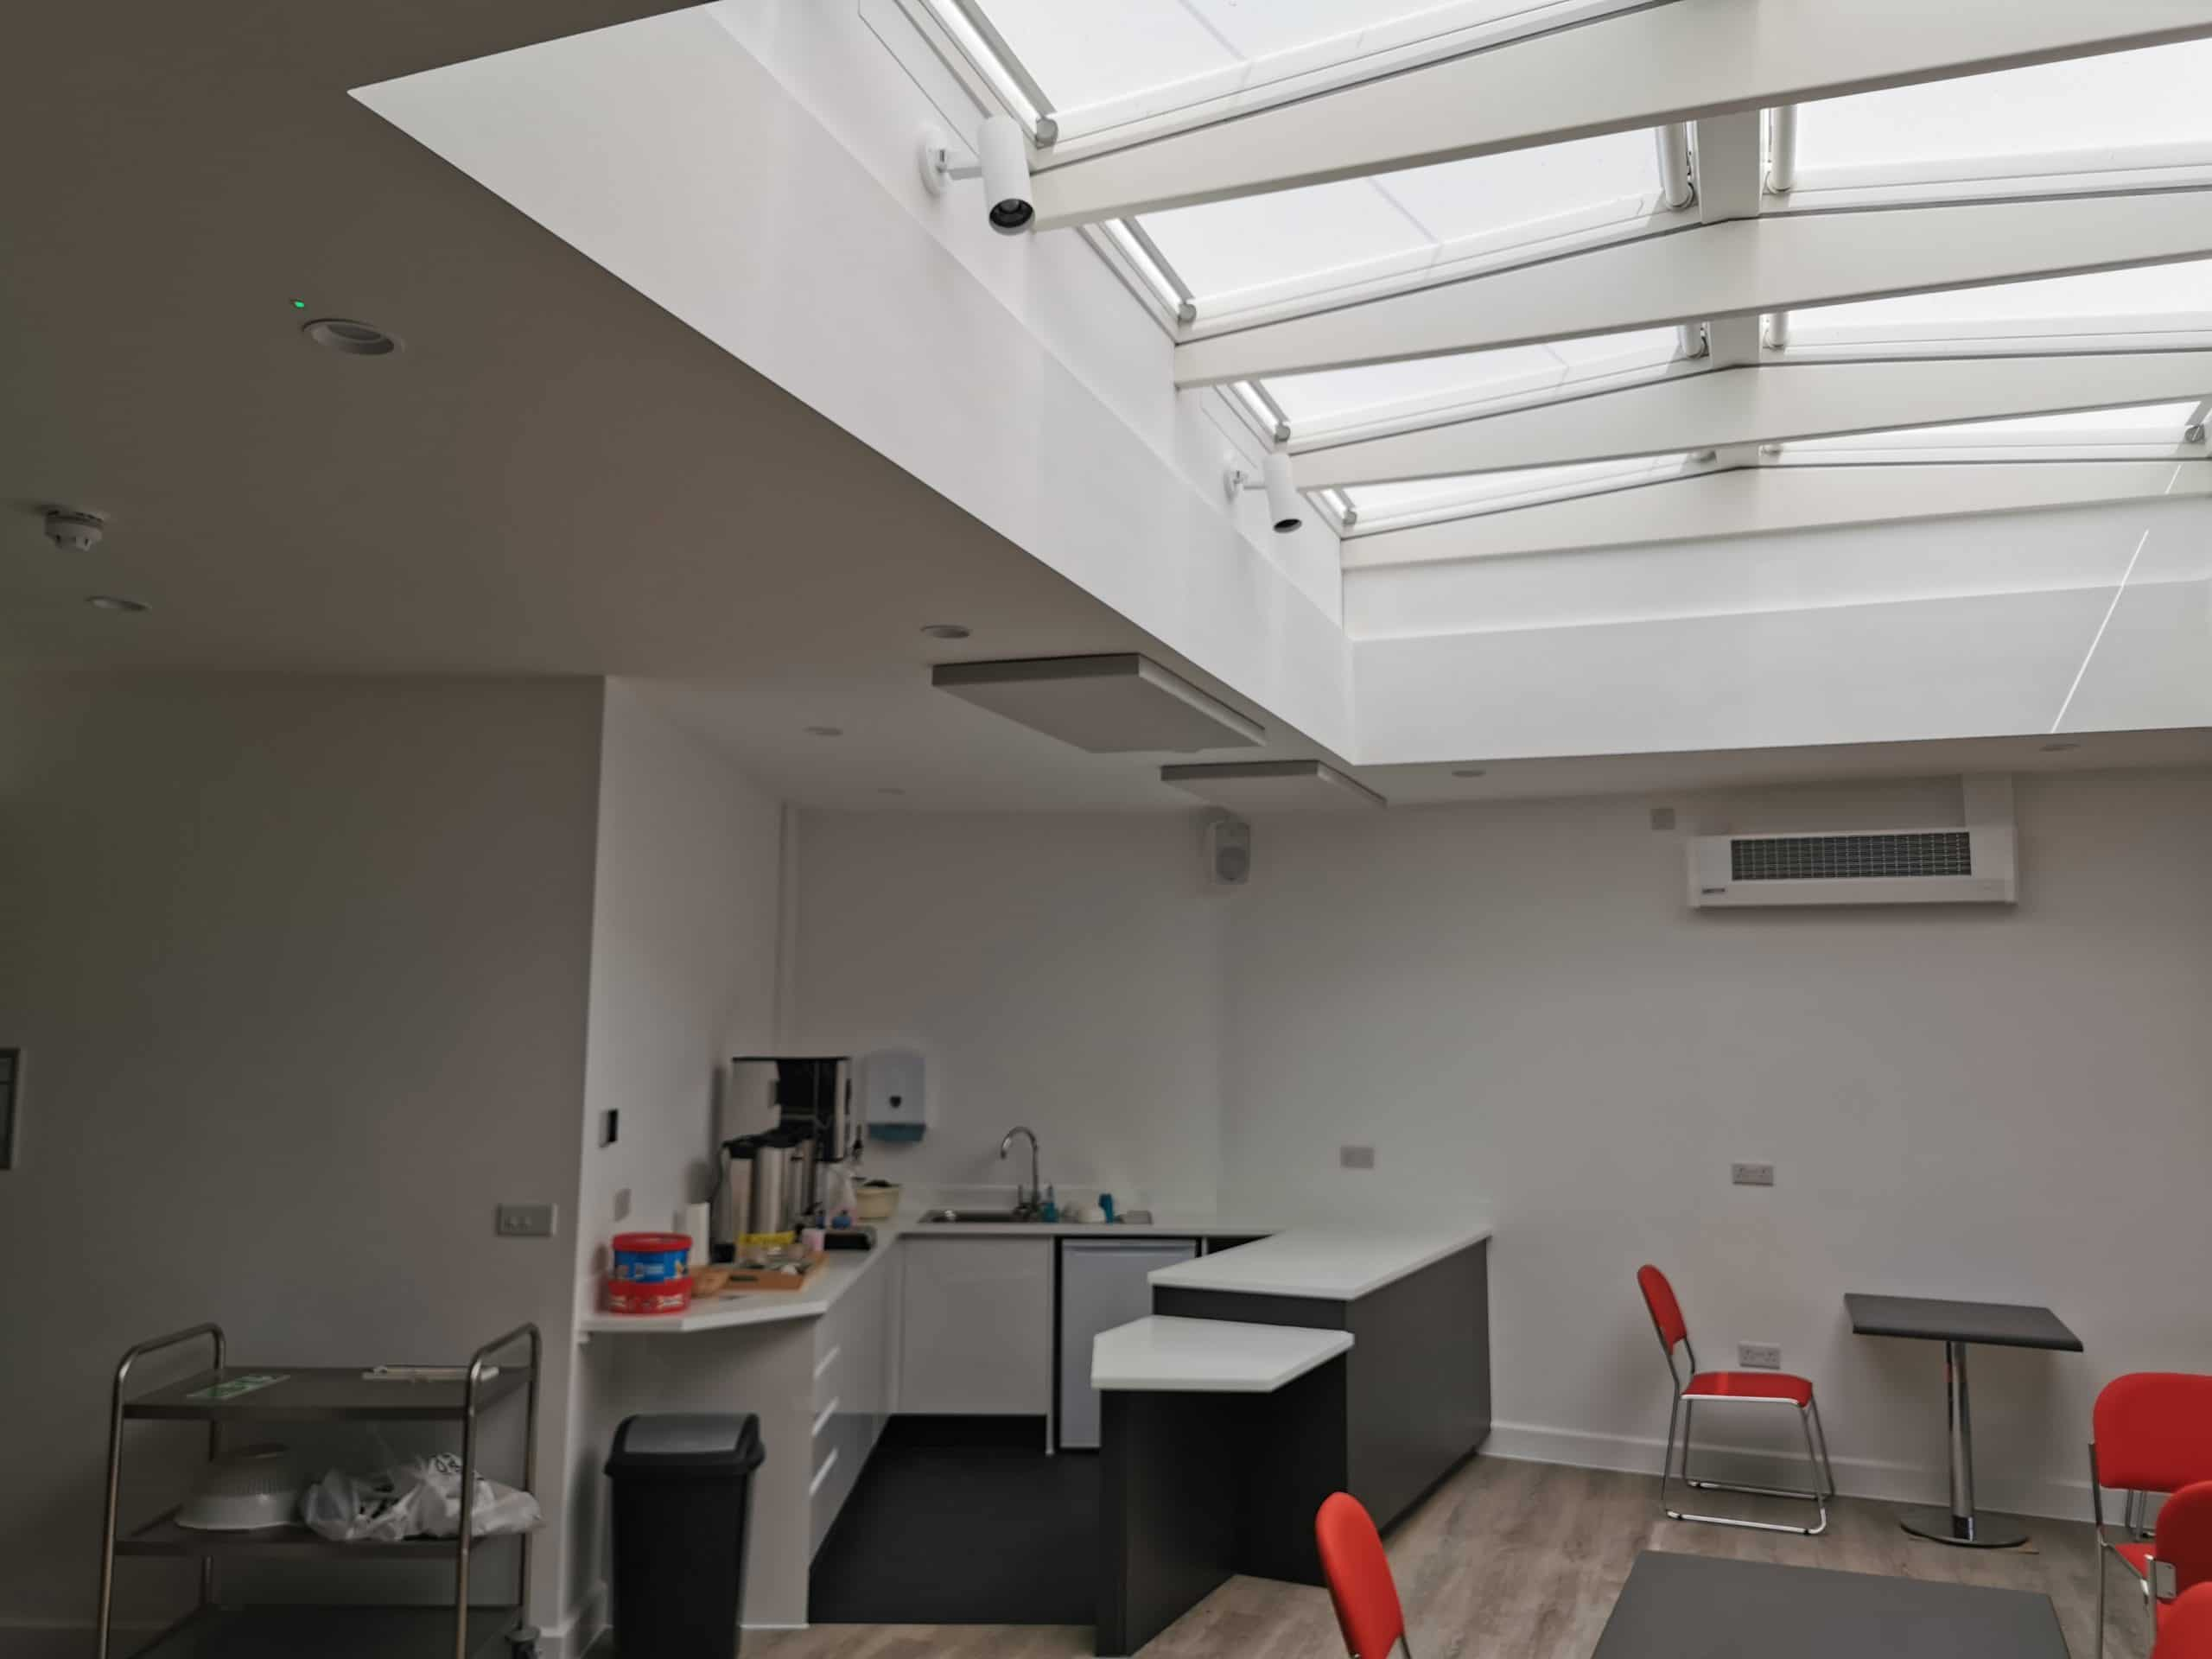 Cafe workstation and roof